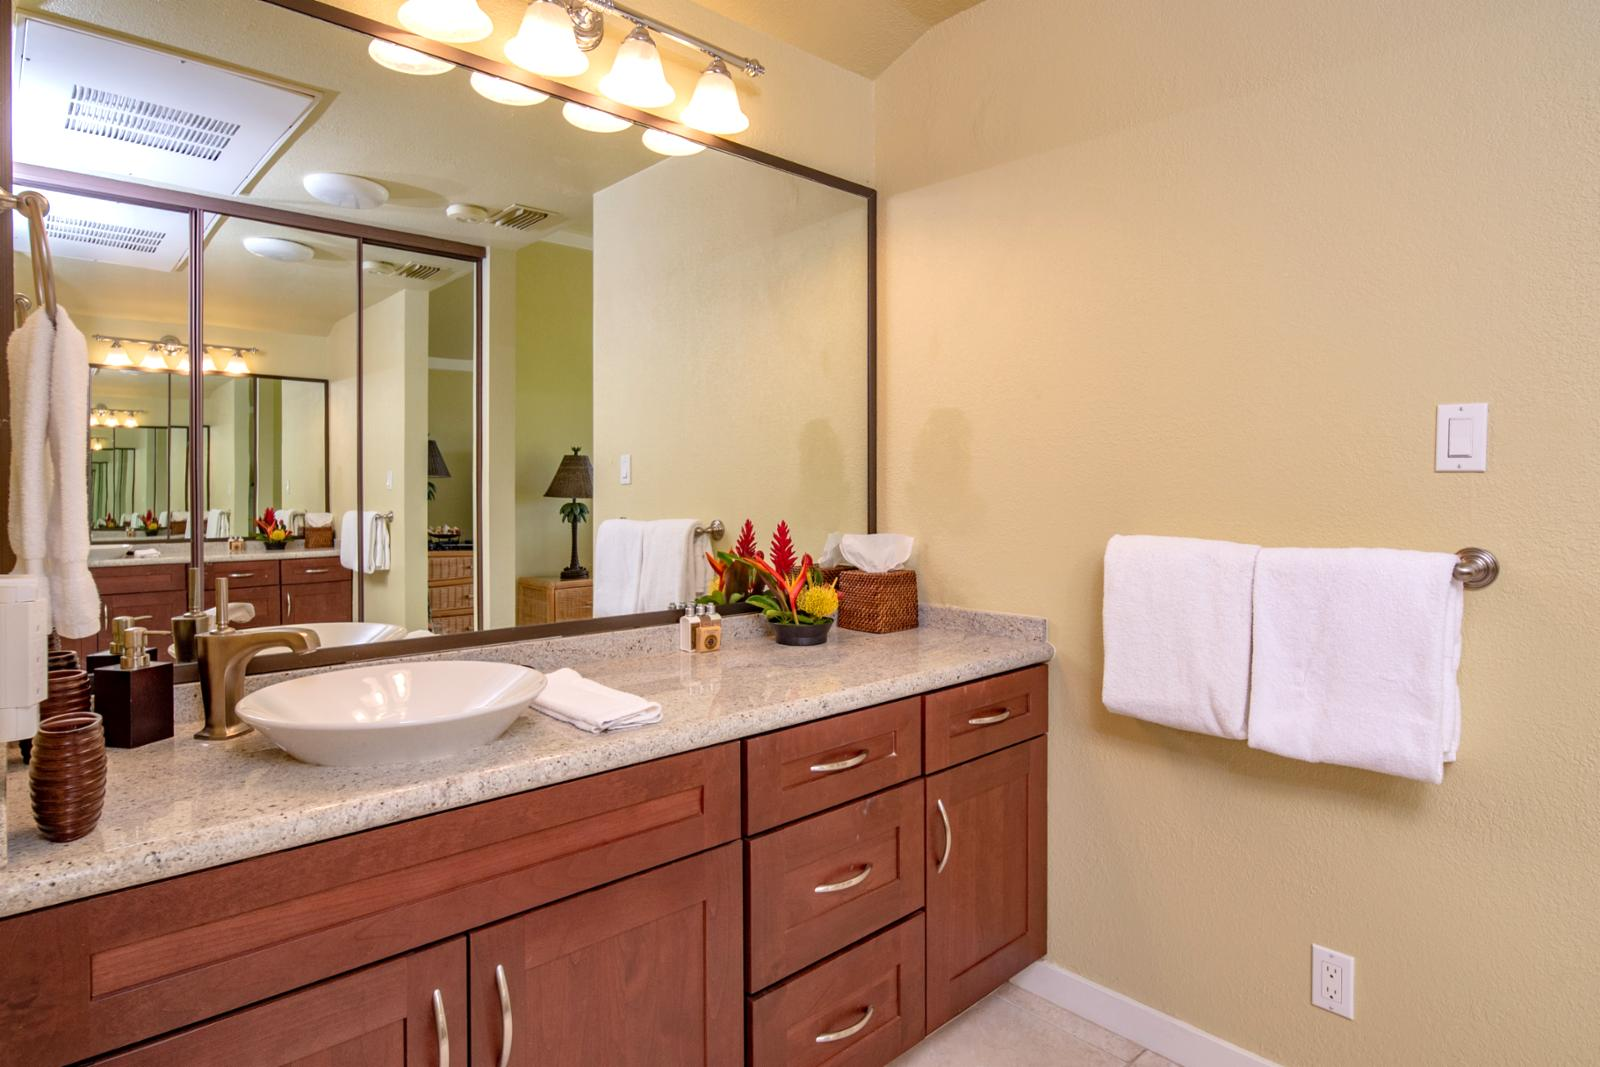 Master suite bath with large counter space and upgraded lighting